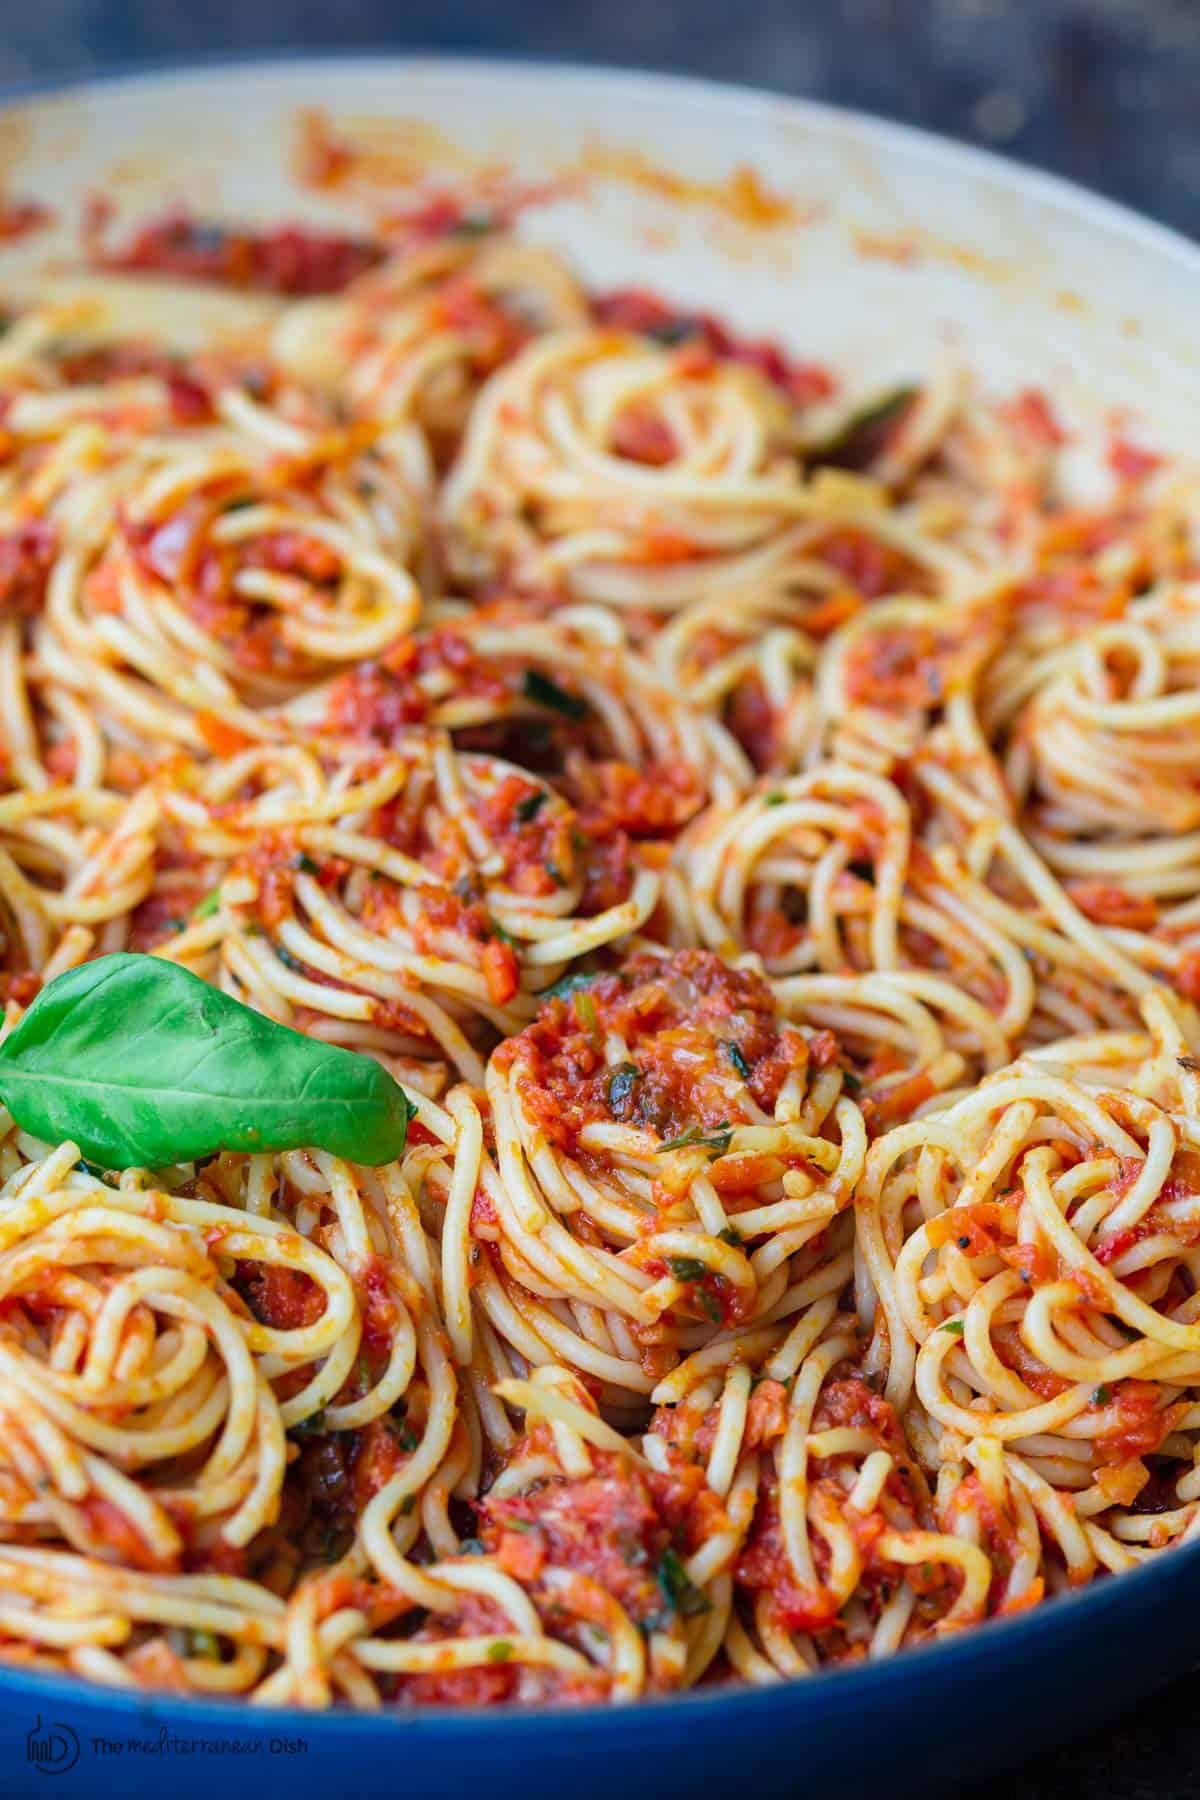 Spaghetti covered in sauce and garnished with fresh basil